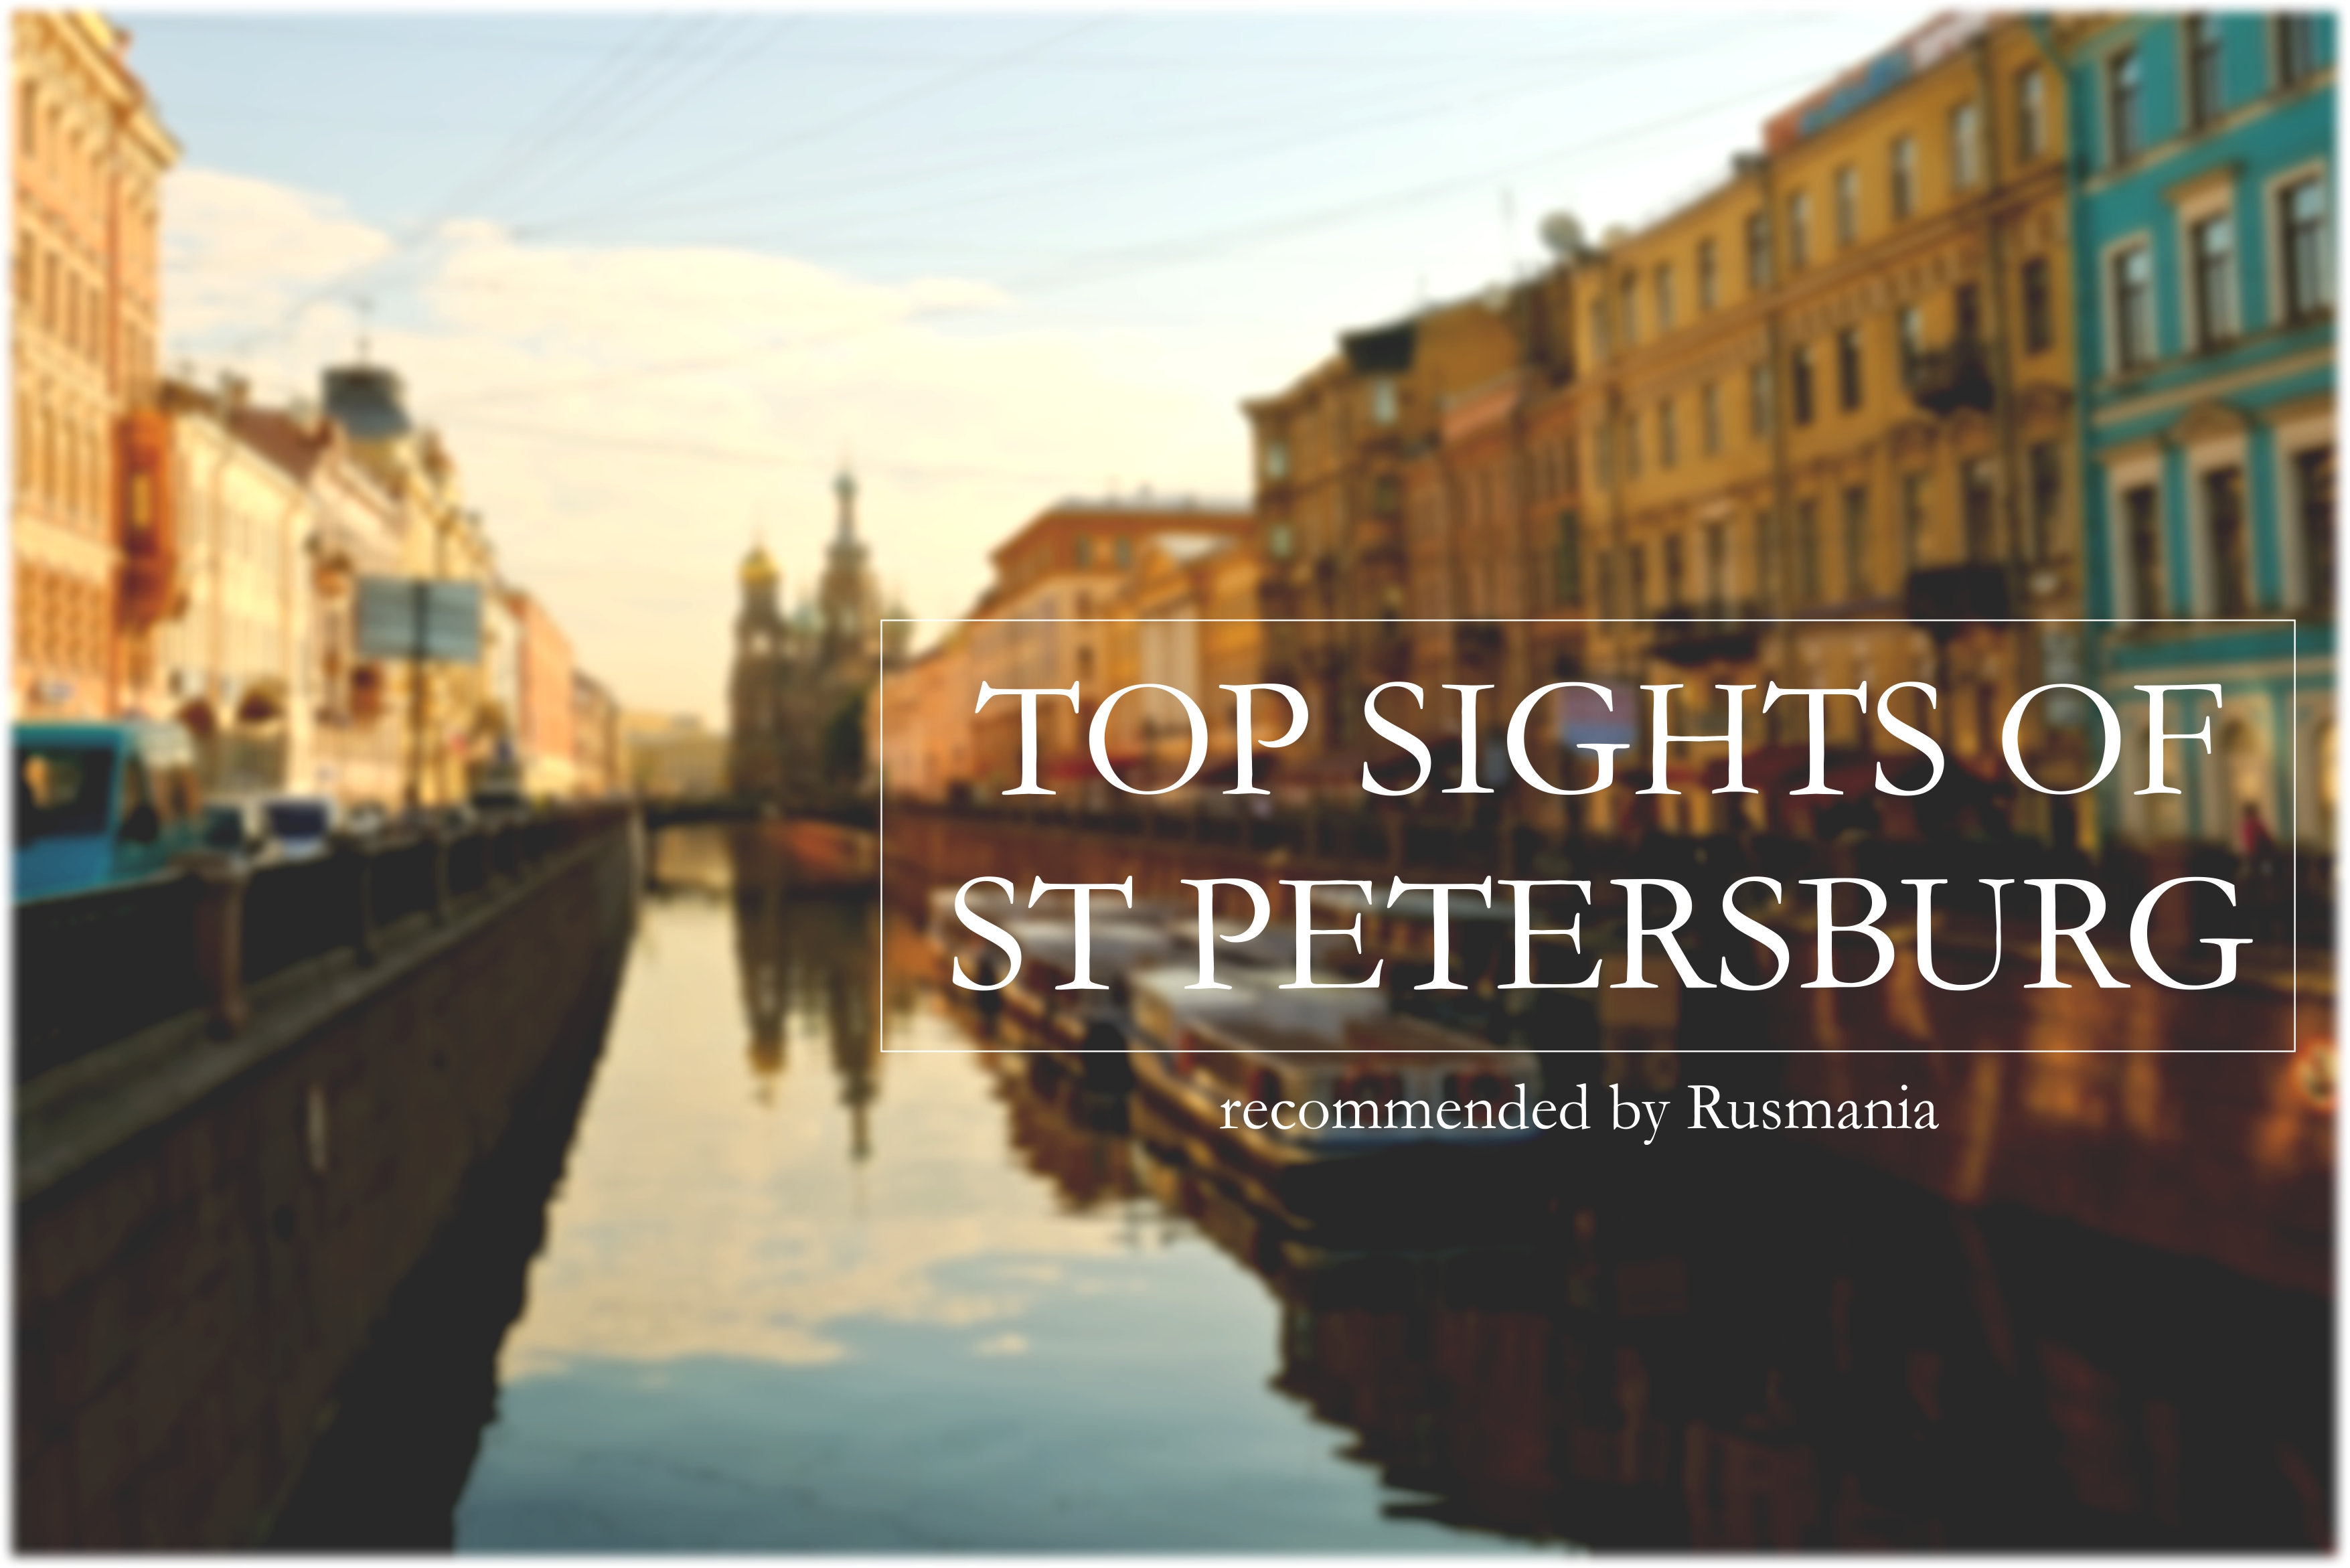 Top sights of St Petersburg